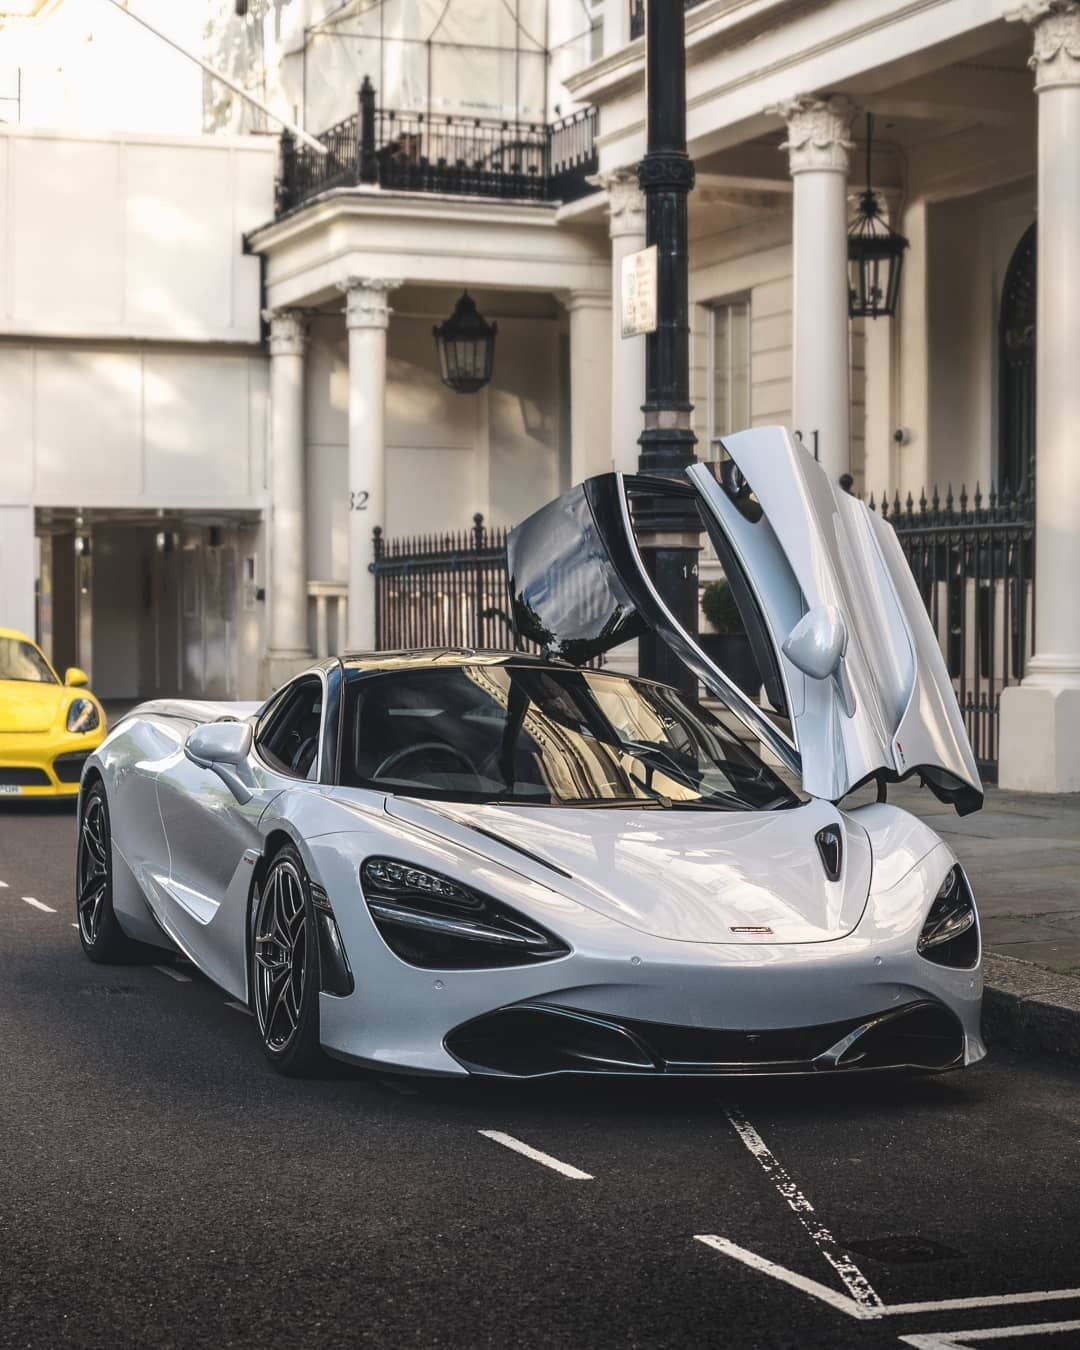 720S. This Amazing Sport Cars. #cool #nice #sportcars